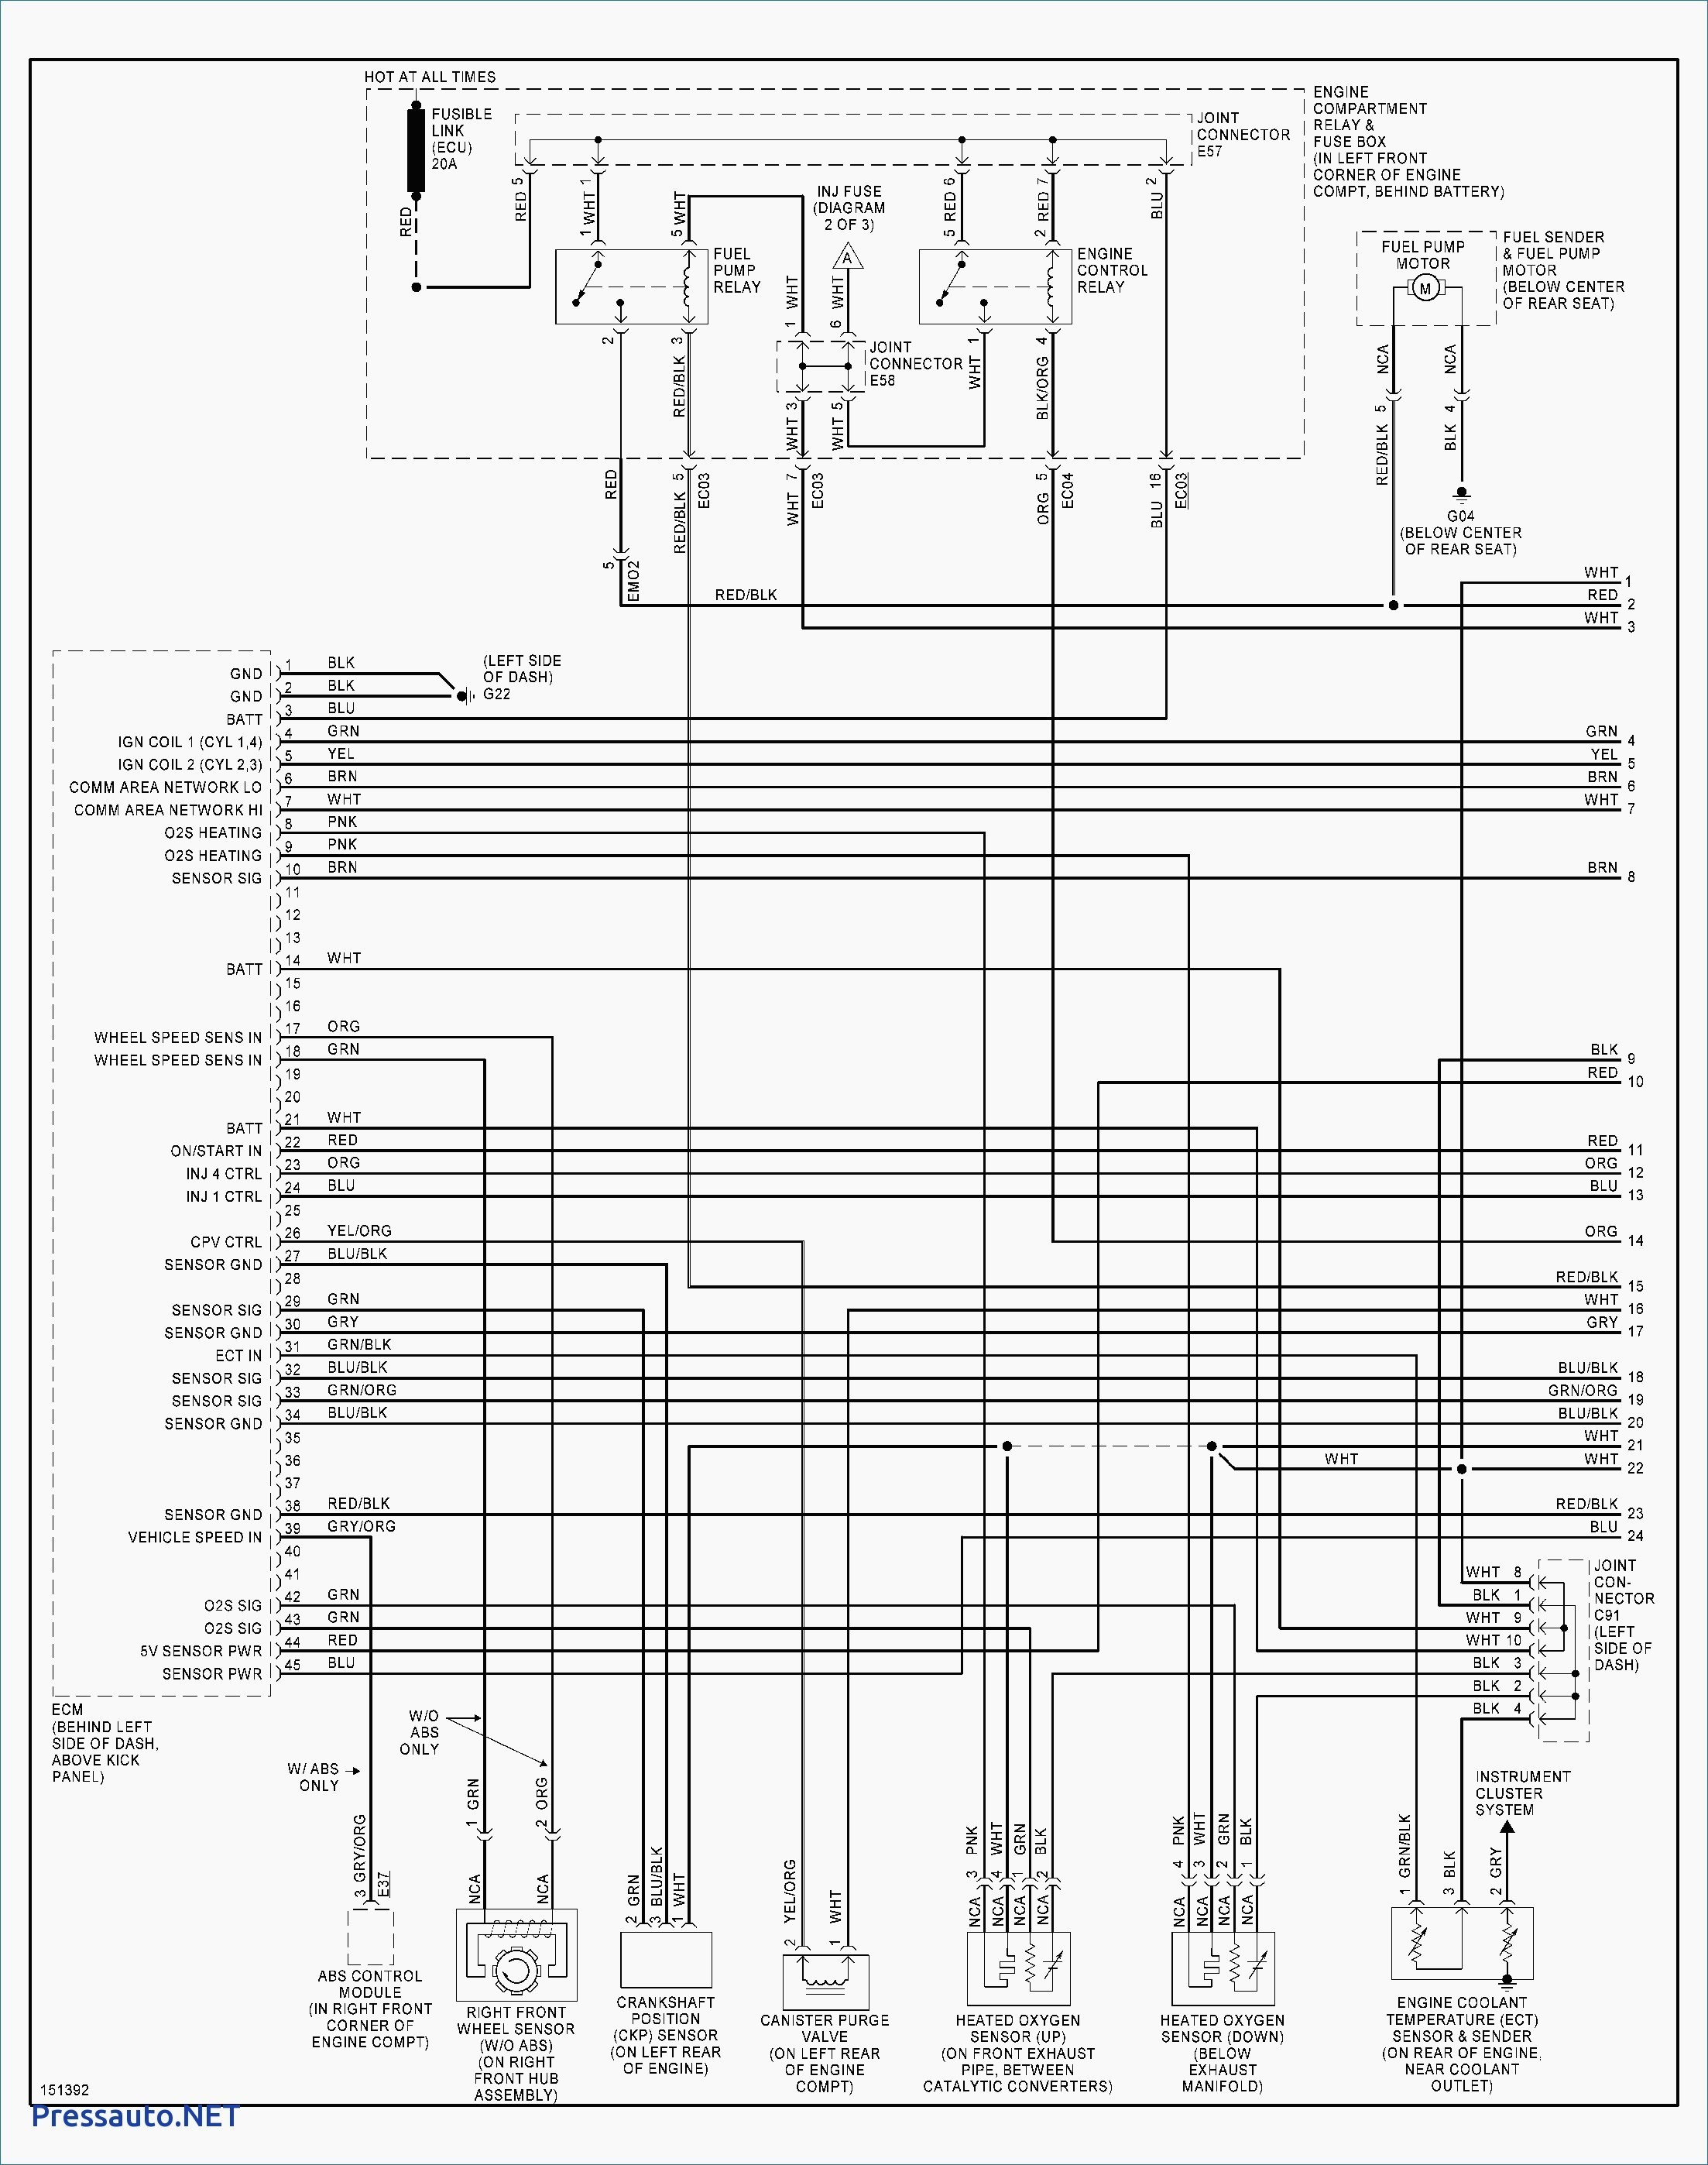 [WLLP_2054]   0506CB Hyundai Gas Golf Cart Wiring Diagram | Wiring Library | Wiring Diagram Hyundai Golf Cart |  | Wiring Library